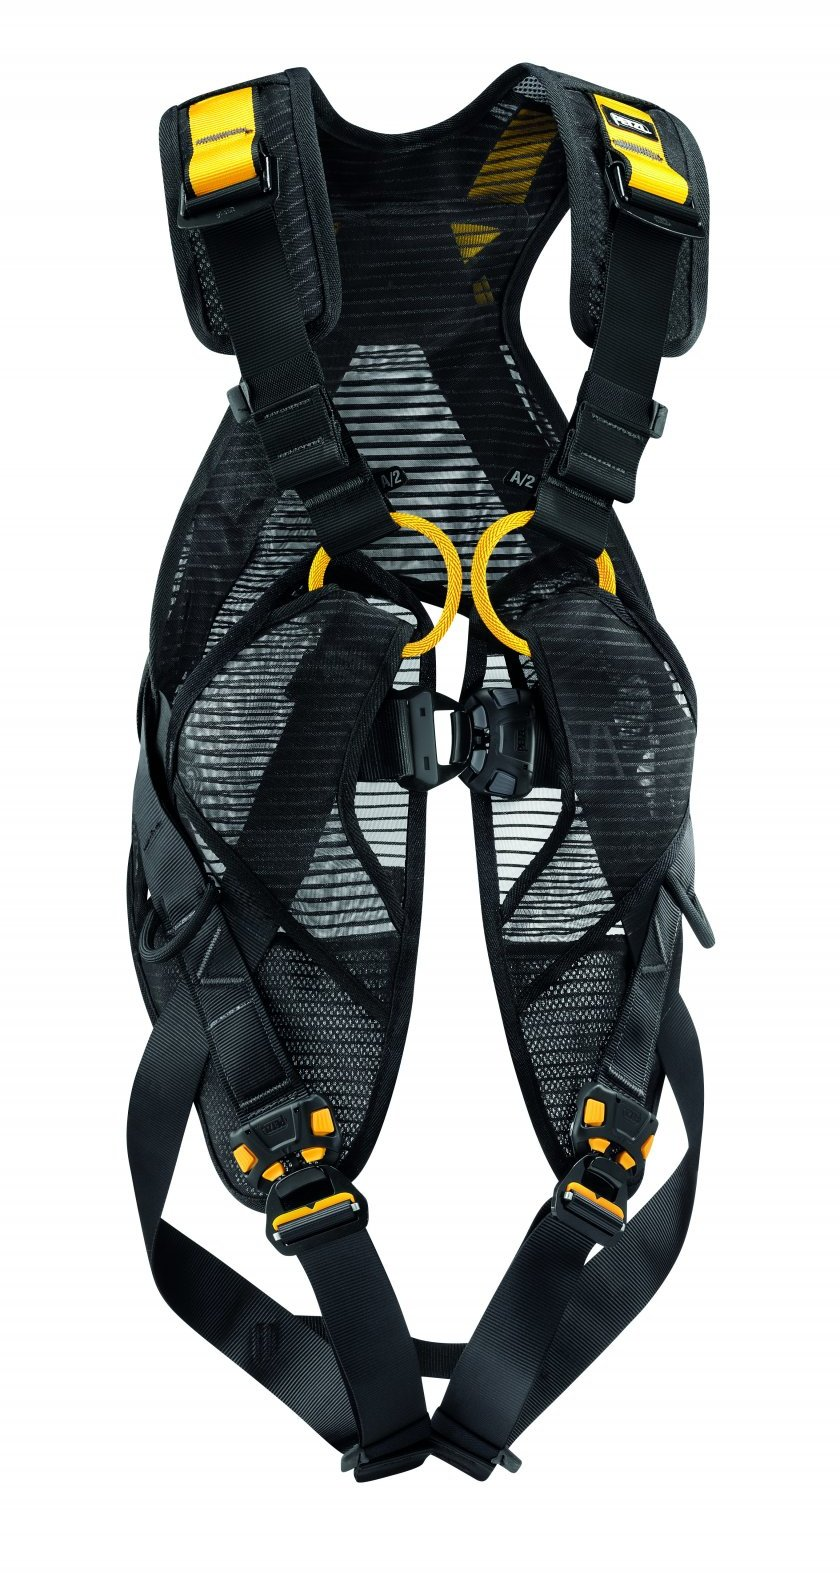 Petzl NEWTON EASYFIT Full Body Harness With Fast Buckles and Vest, ANSI & CSA